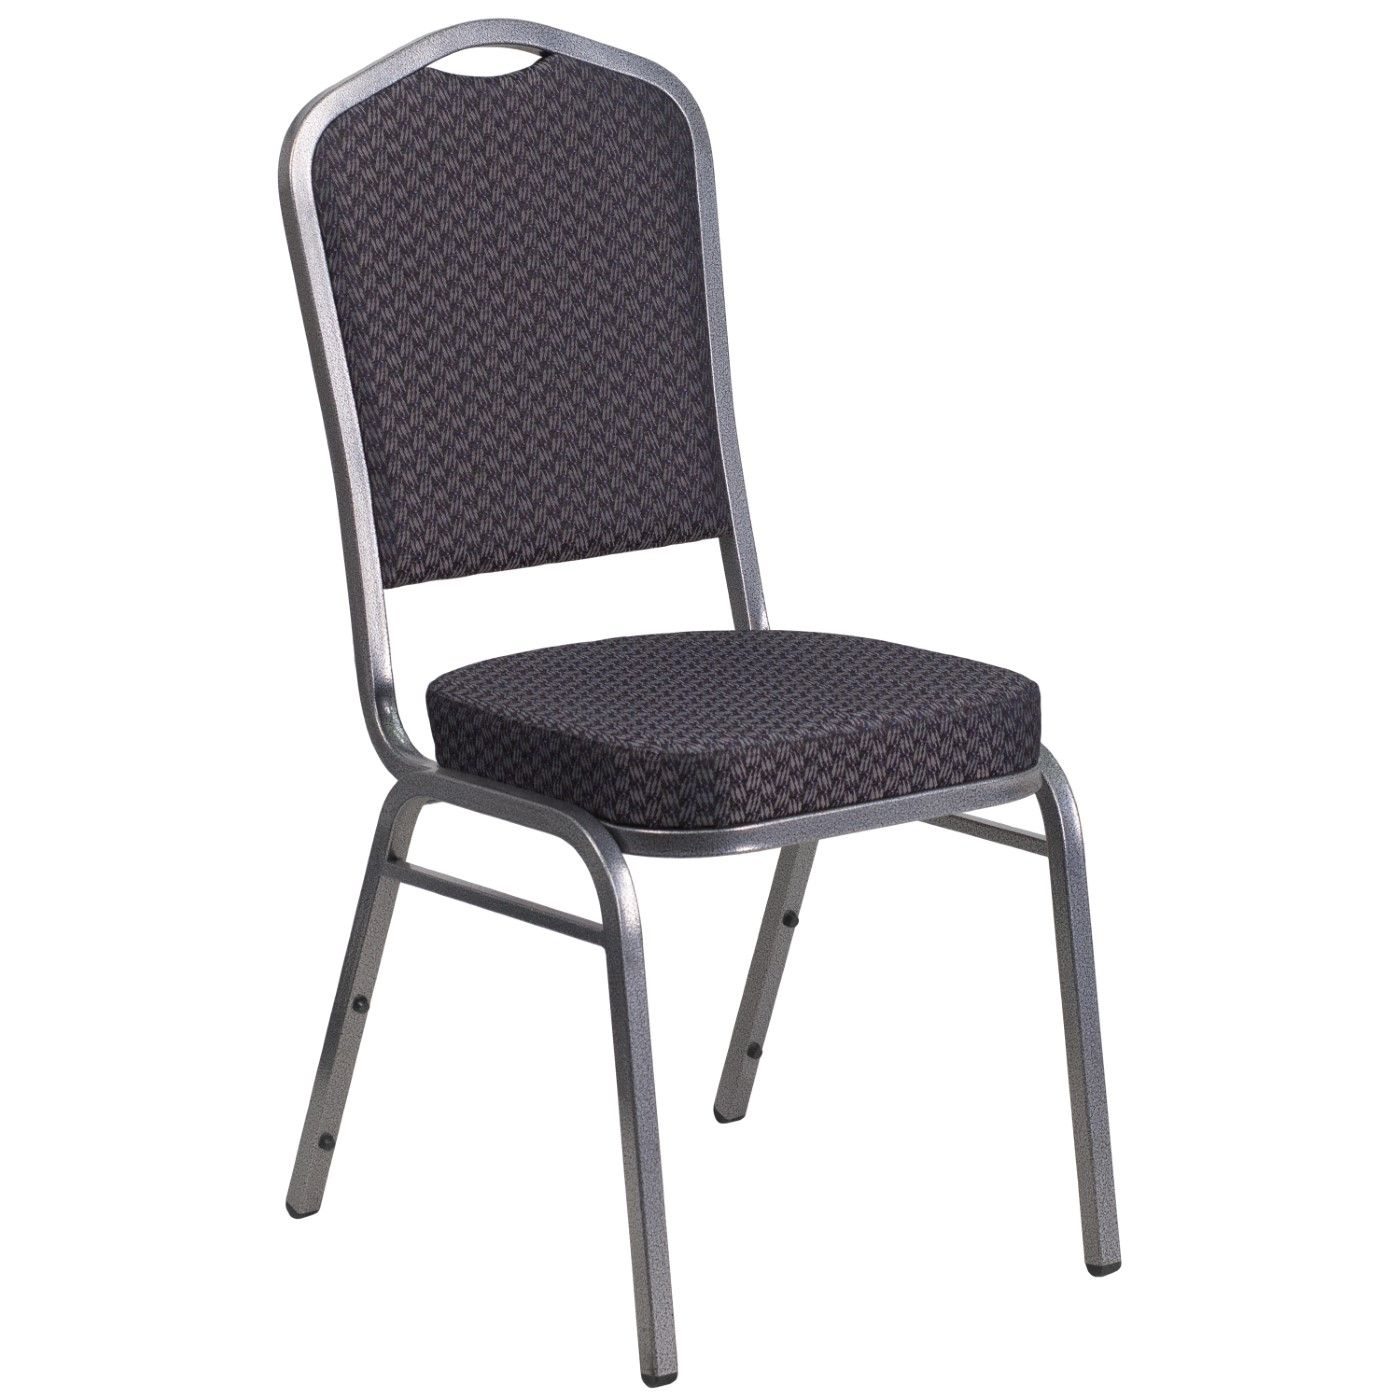 TOUGH ENOUGH Series Crown Back Stacking Banquet Chair in Black Patterned Fabric - Silver Vein Frame